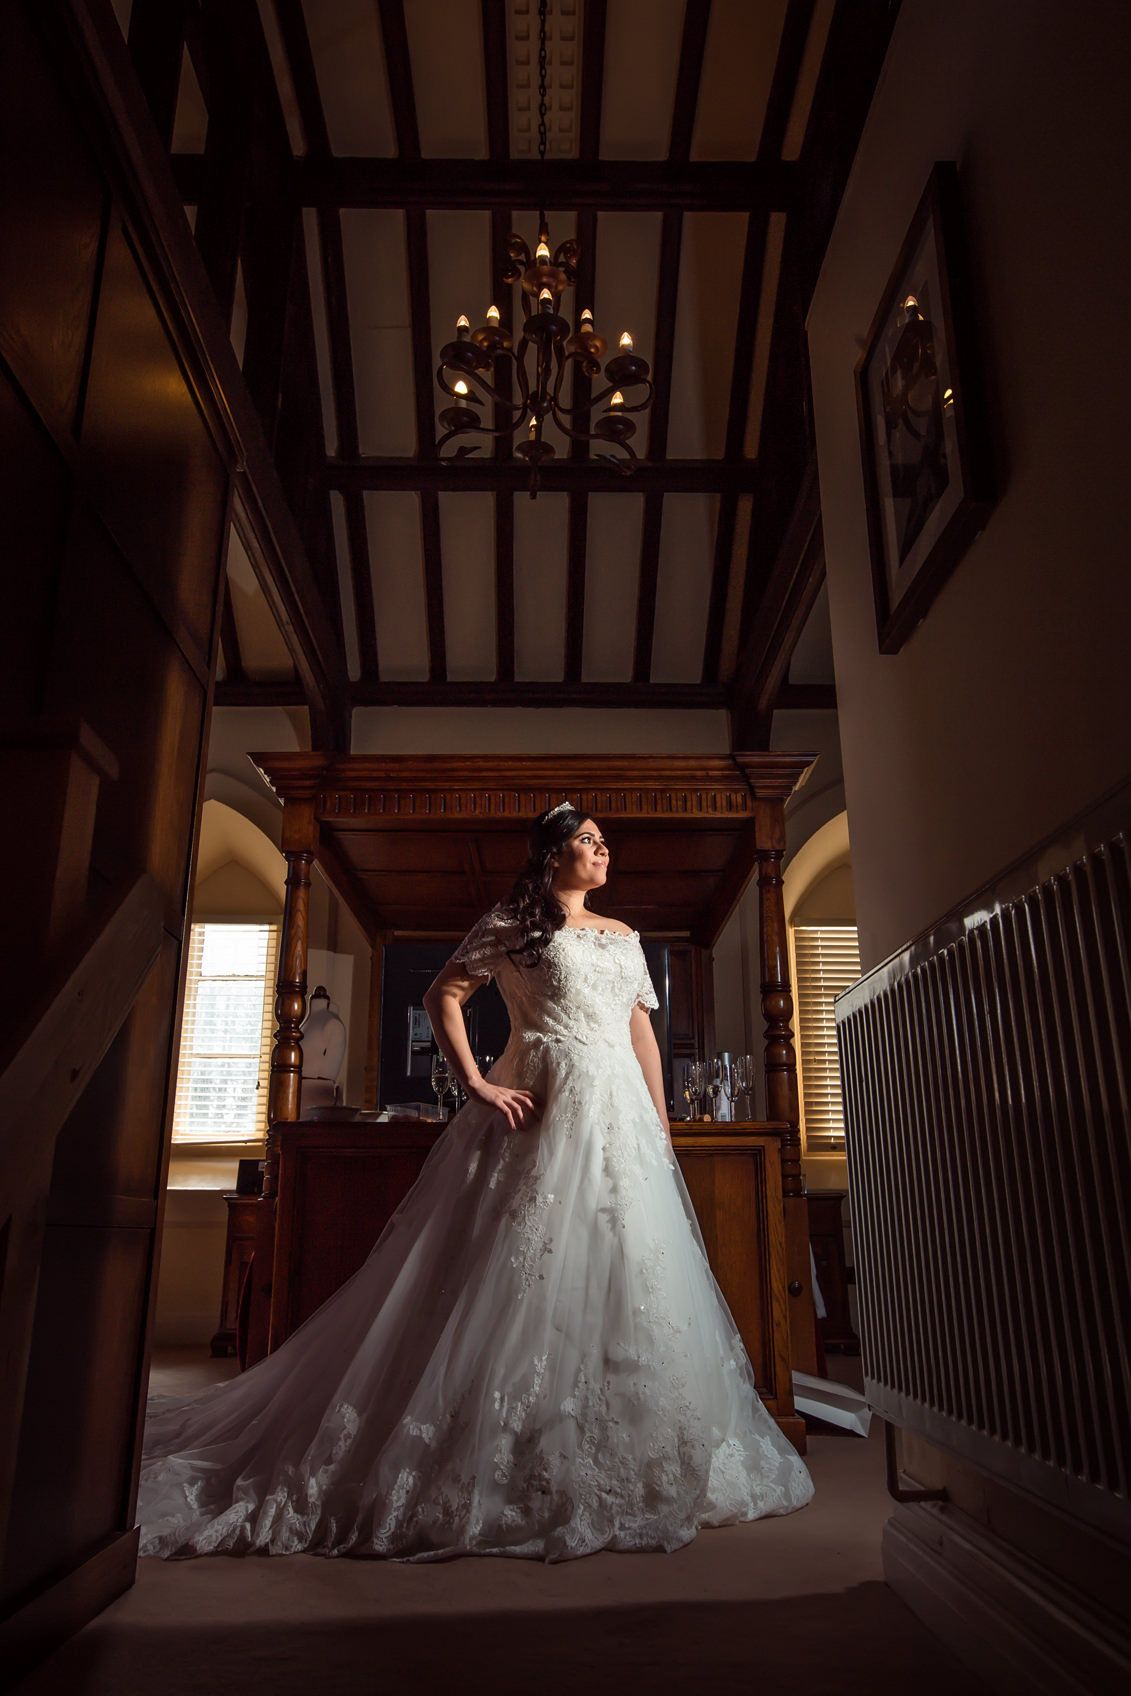 Bride stands and poses in her white wedding dress in the bedroom at Peckforton Castle